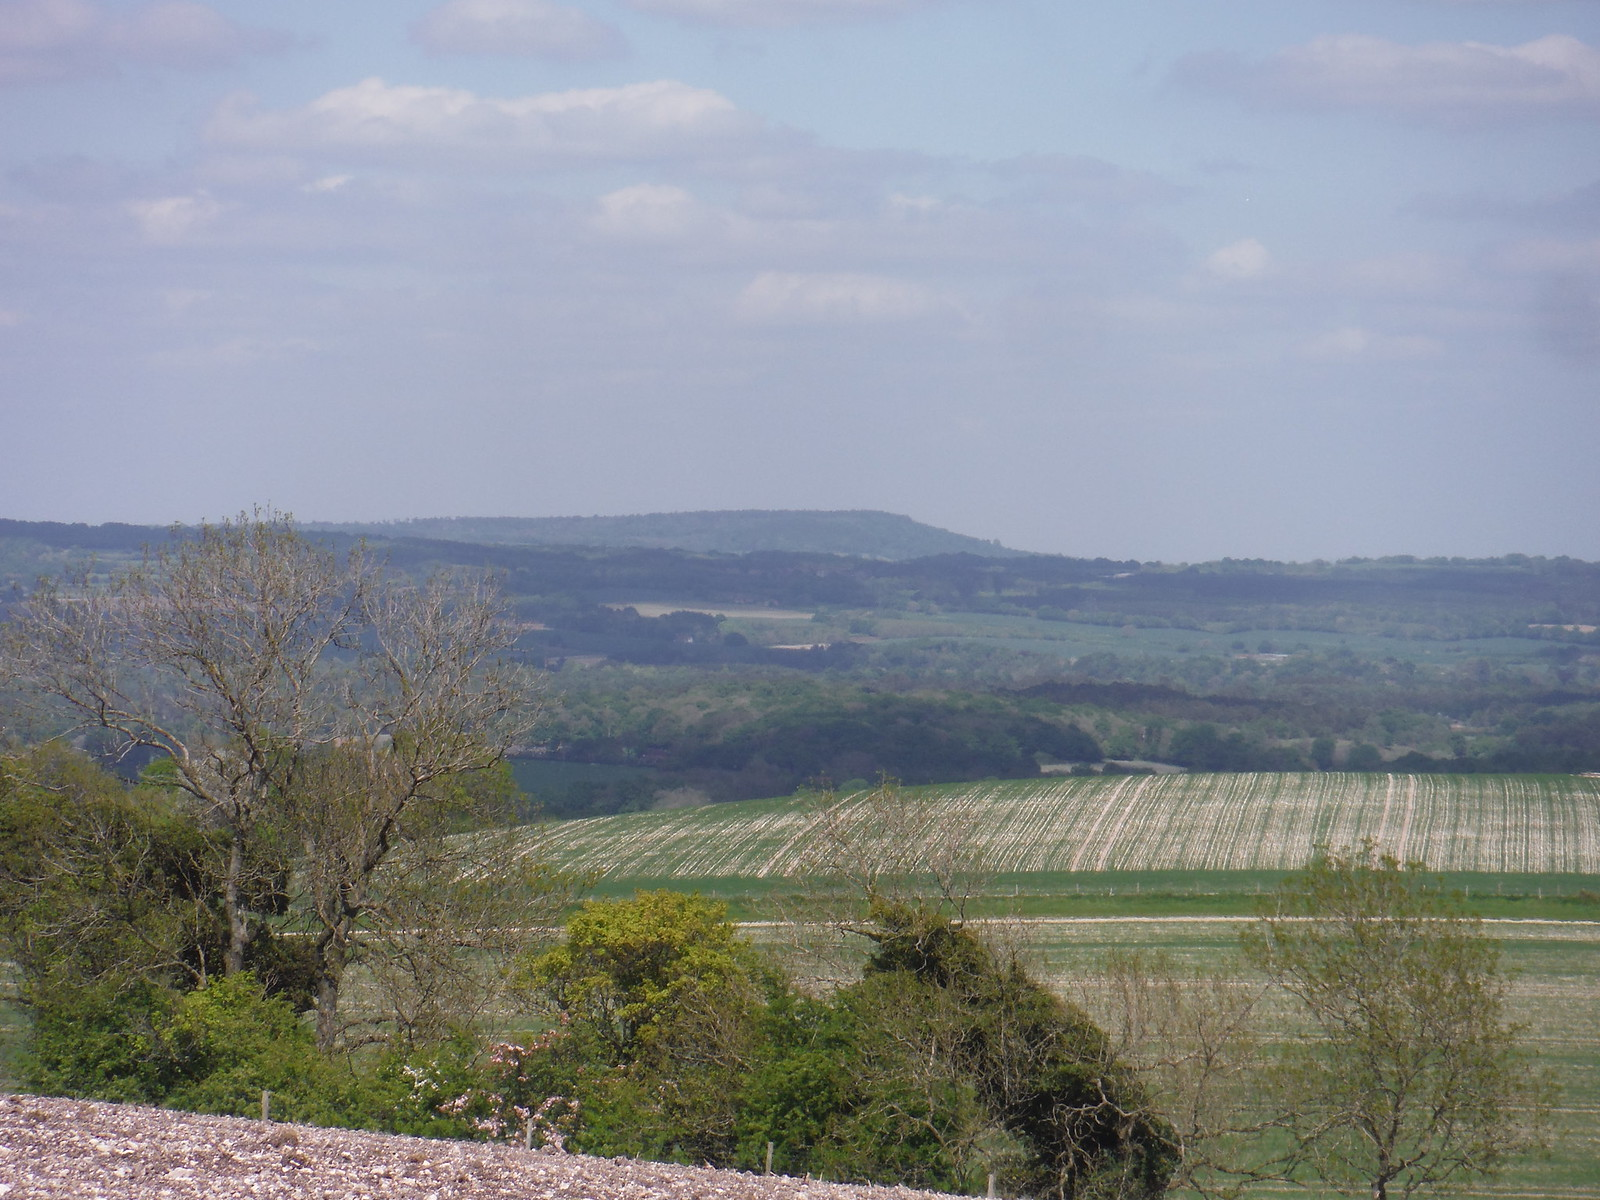 Rother Valley with Black Down in the distance SWC Walk Rowlands Castle Circular - Extension